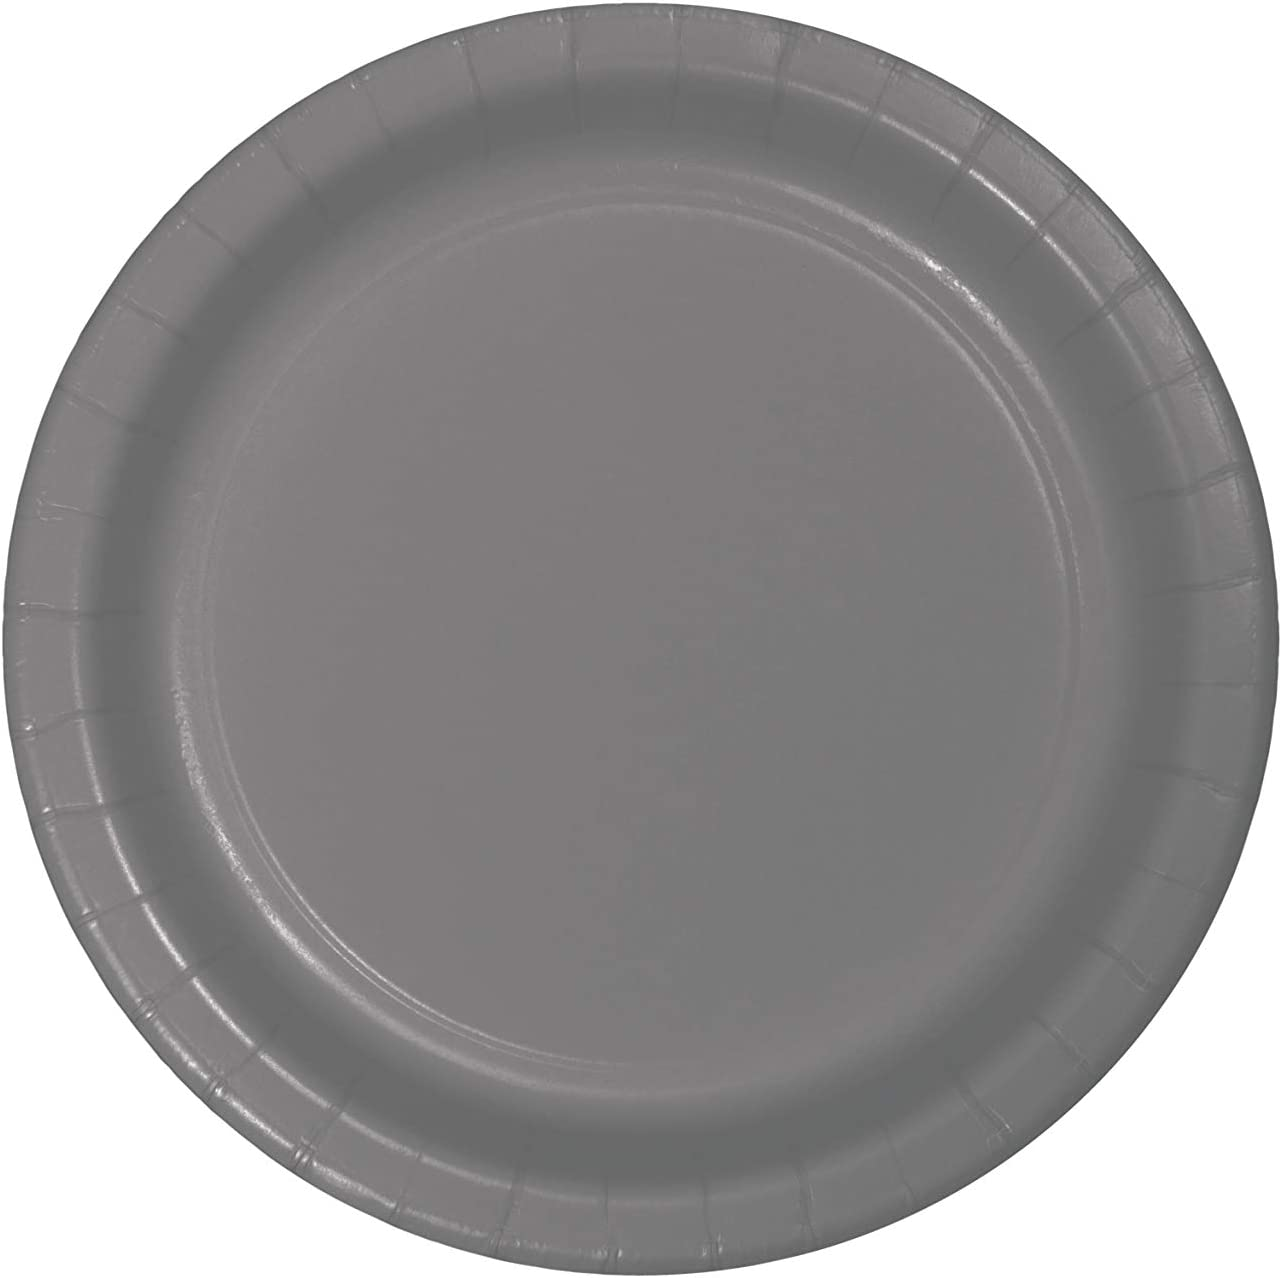 Creative Converting 339639 DINNER PLATE, 9 in, 24 ct, Gray